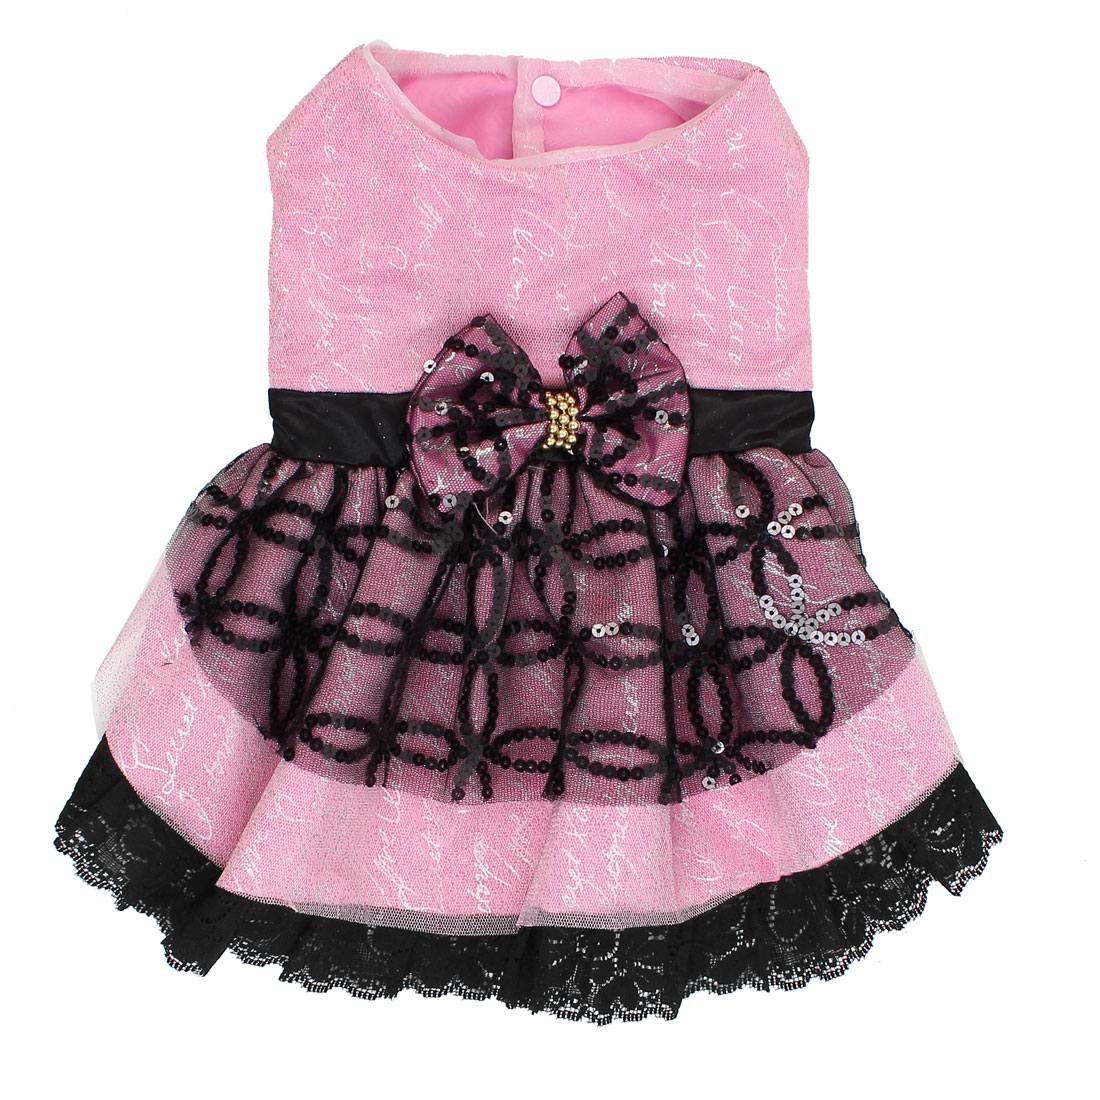 Pet Cat Sequins Bowknot Lace Decor Wedding Dress Skirt Pink Black Size S